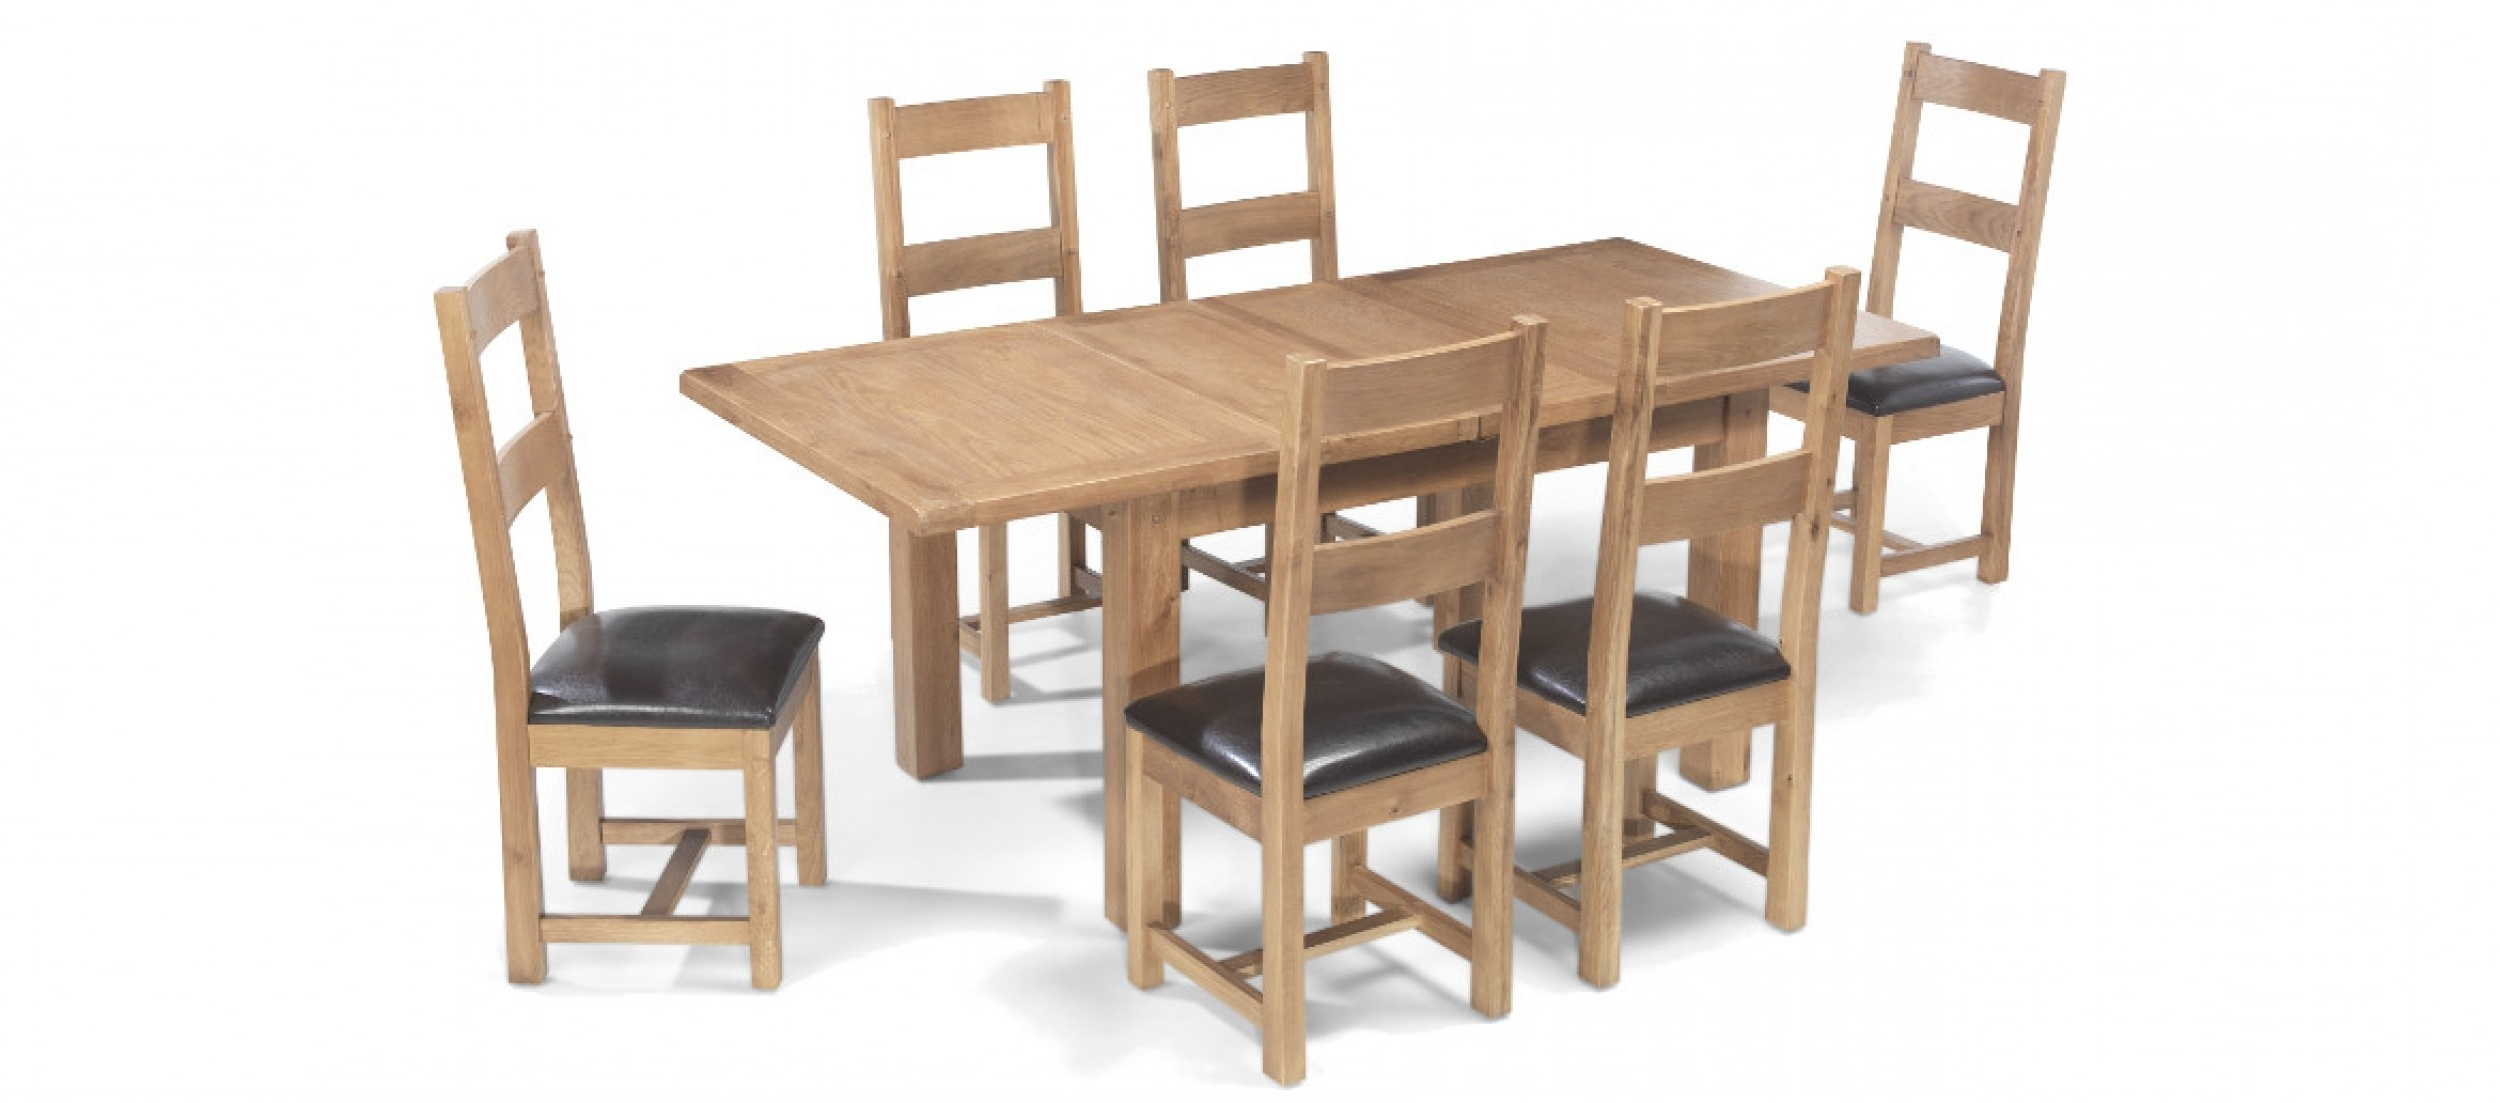 Quercus With Well Known Extendable Dining Room Tables And Chairs (View 25 of 25)